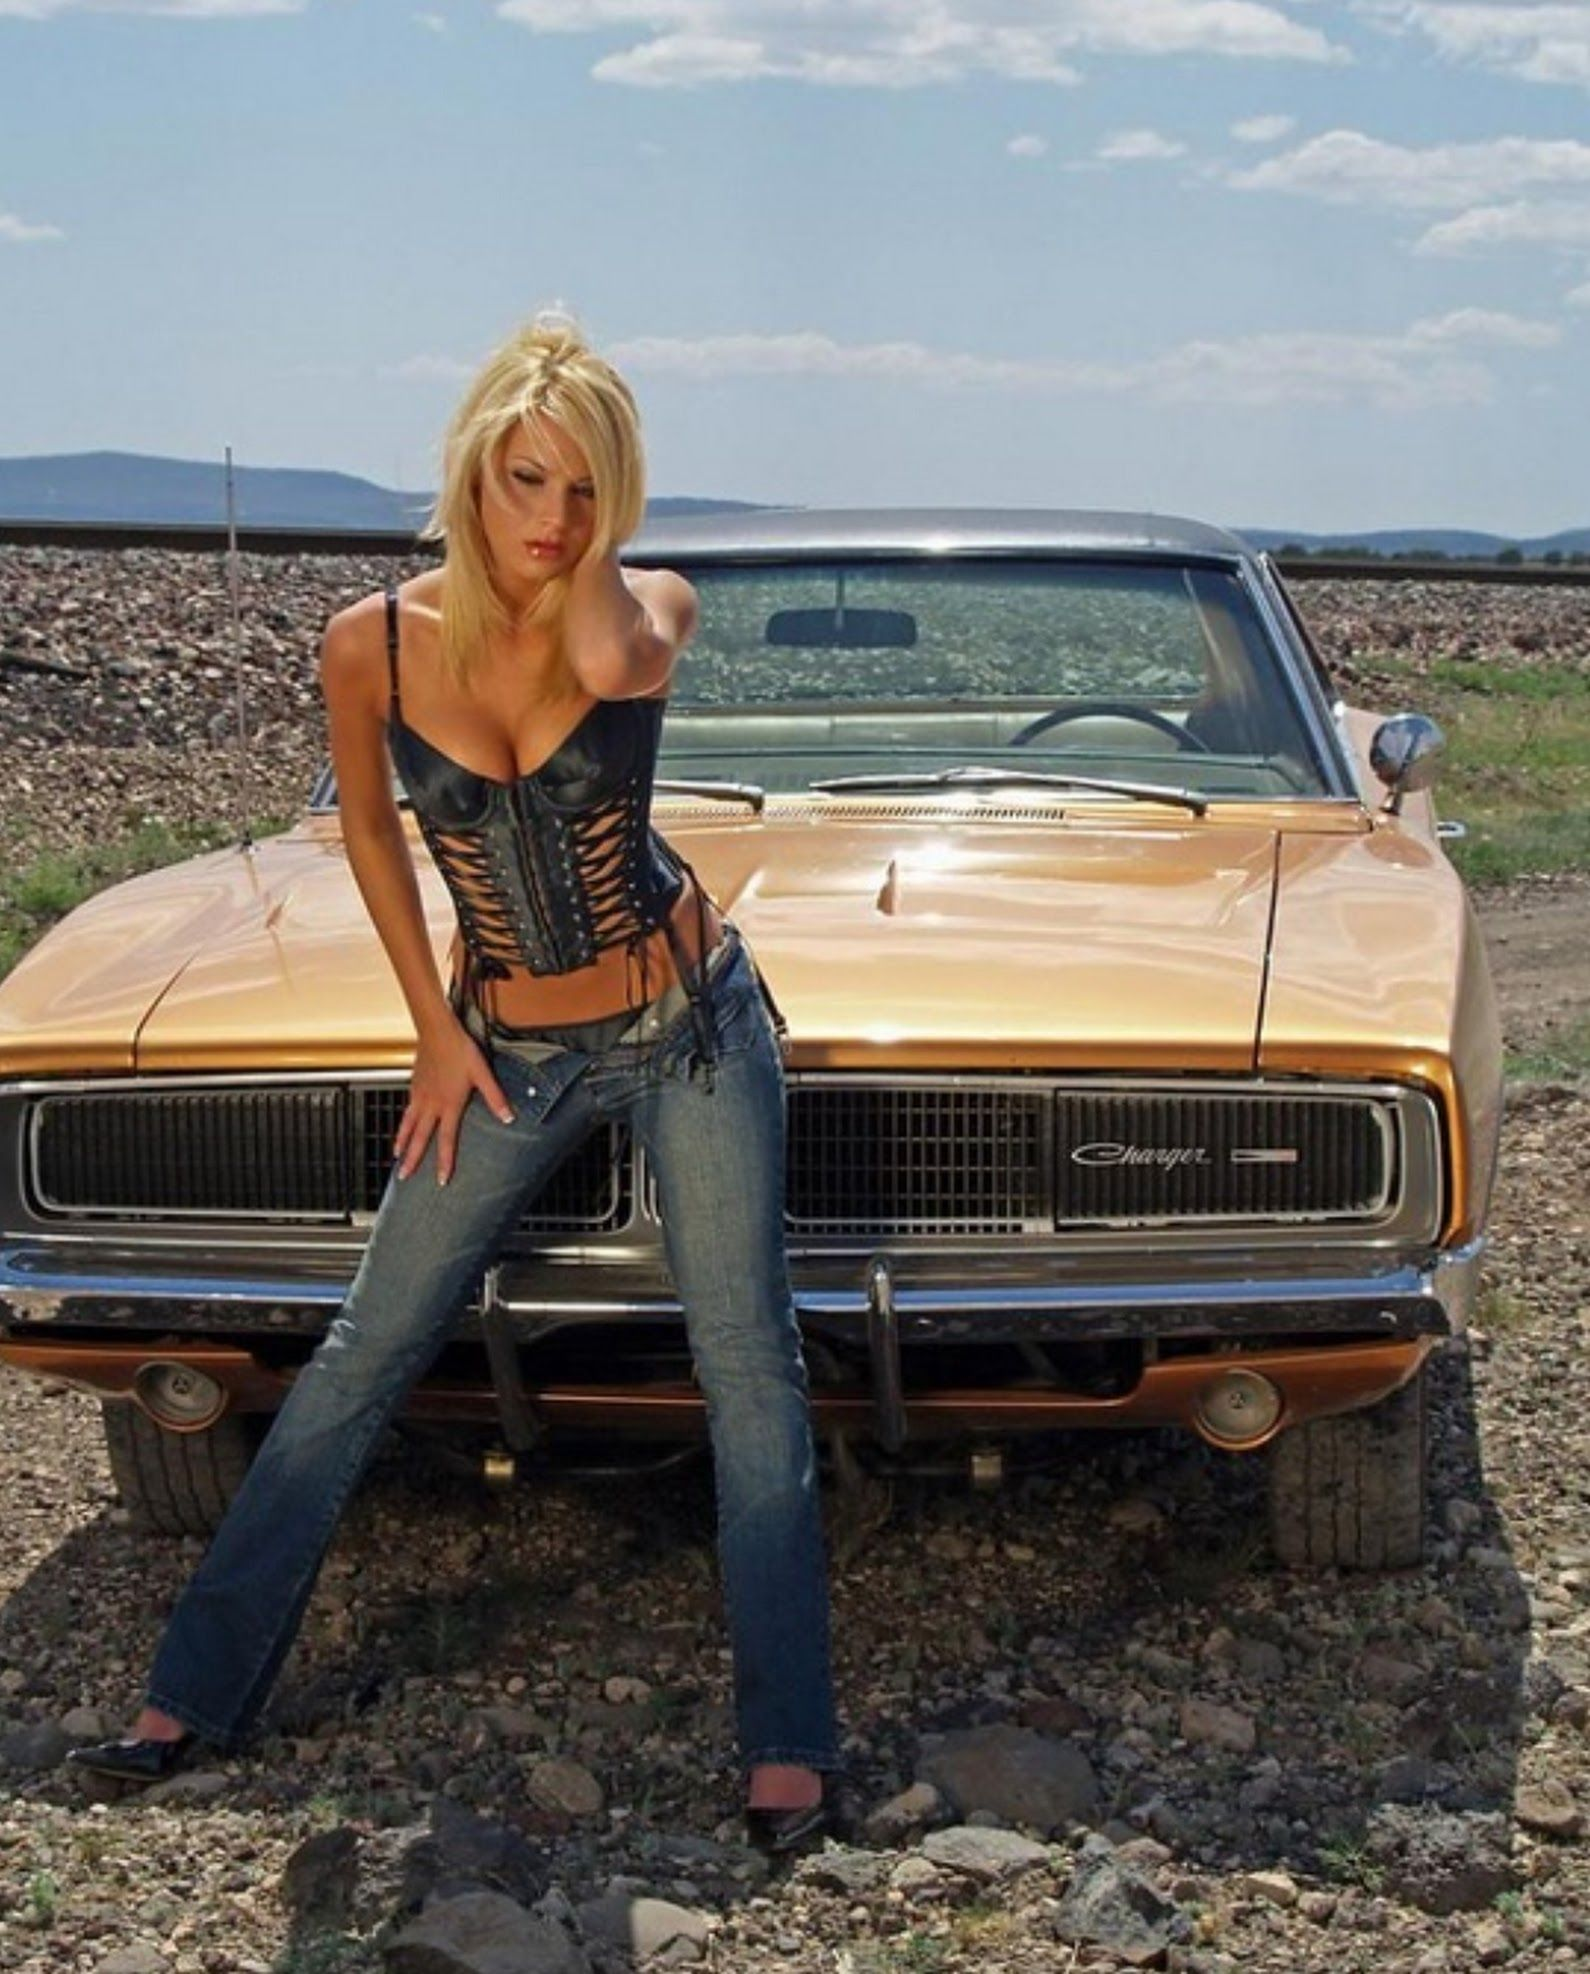 For Dodge charger hot girls consider, that